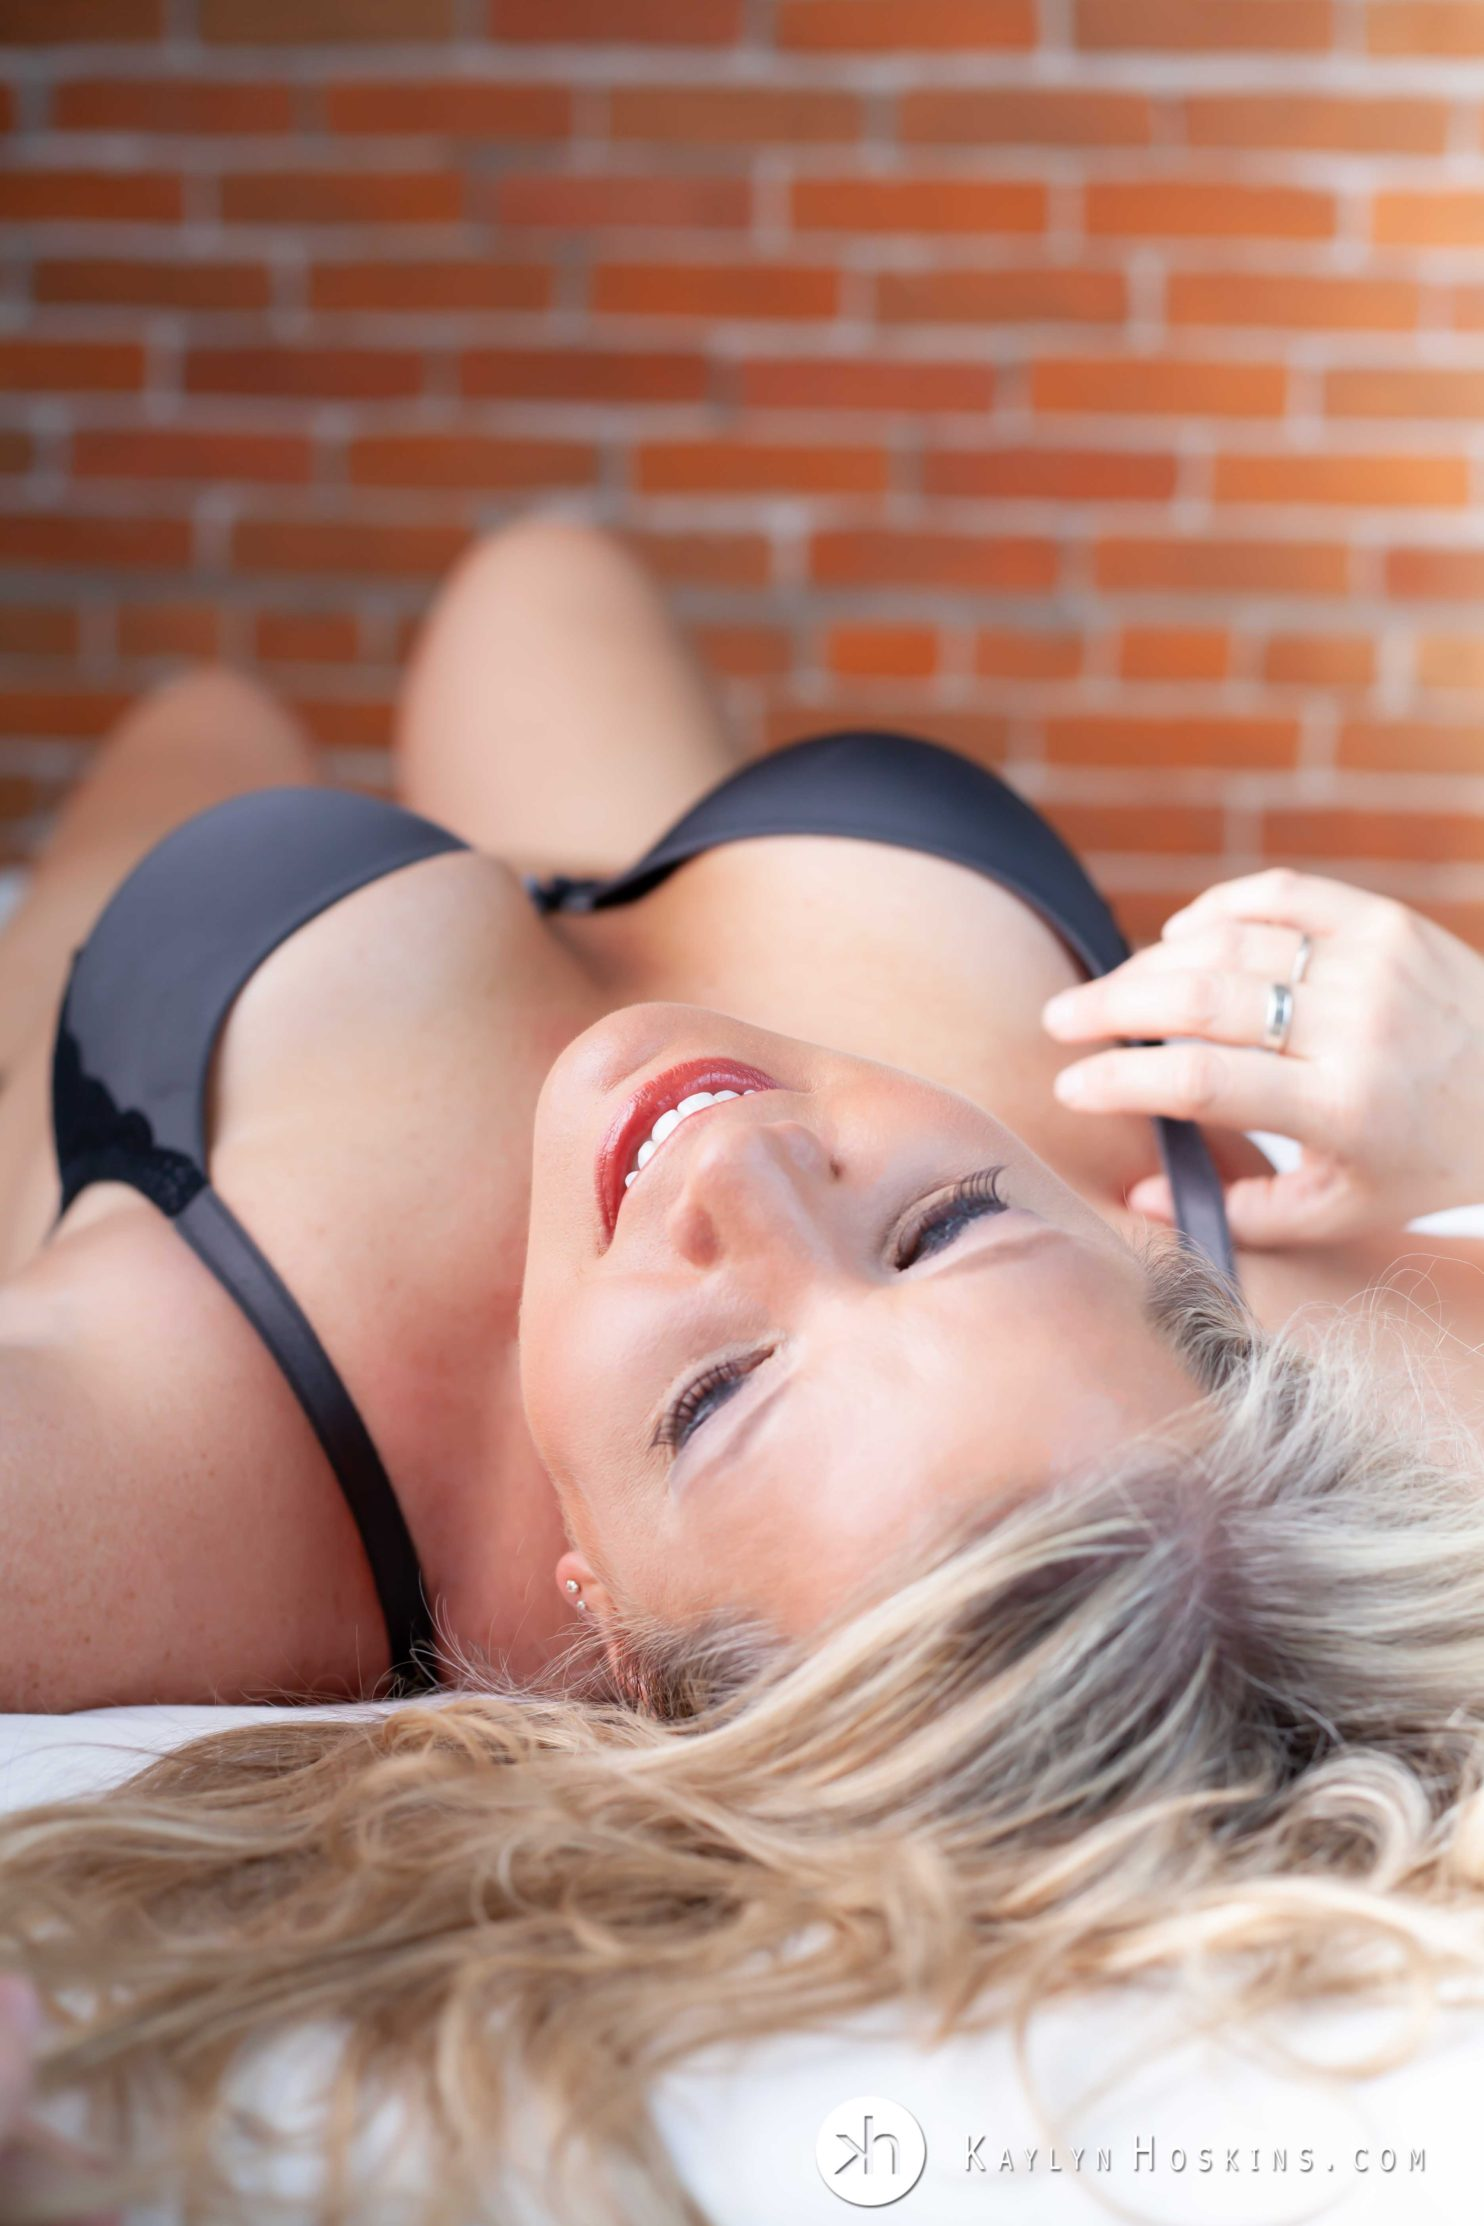 Gorgeous nurse sexily lays face up on bed in bra and panties during boudoir shoot in Solon, Iowa